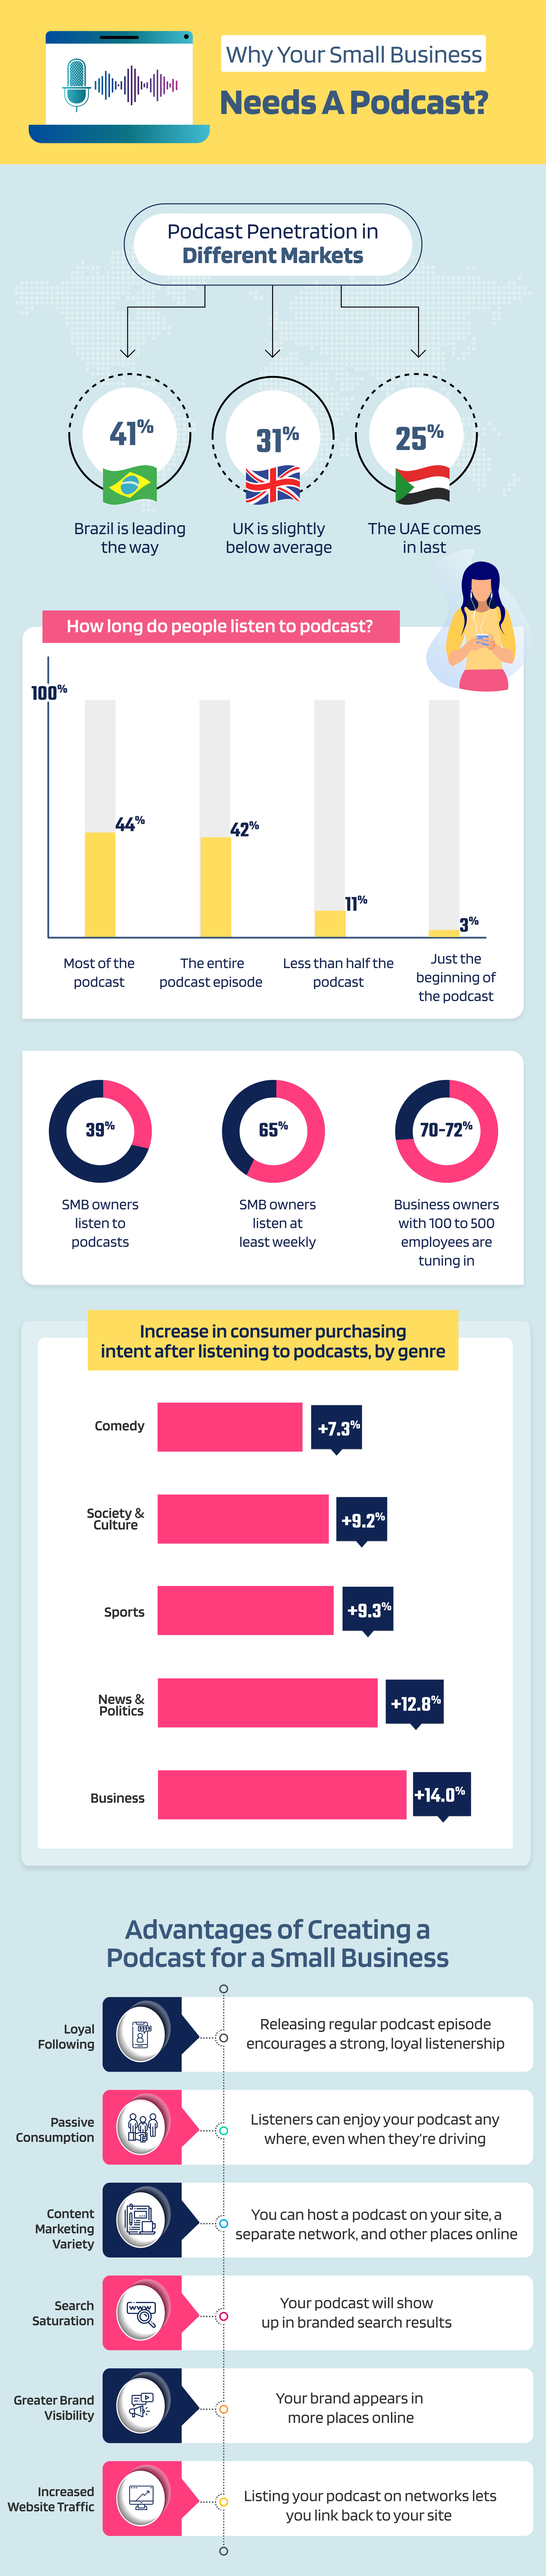 10 Reasons Why Your Small Business Needs A Podcast